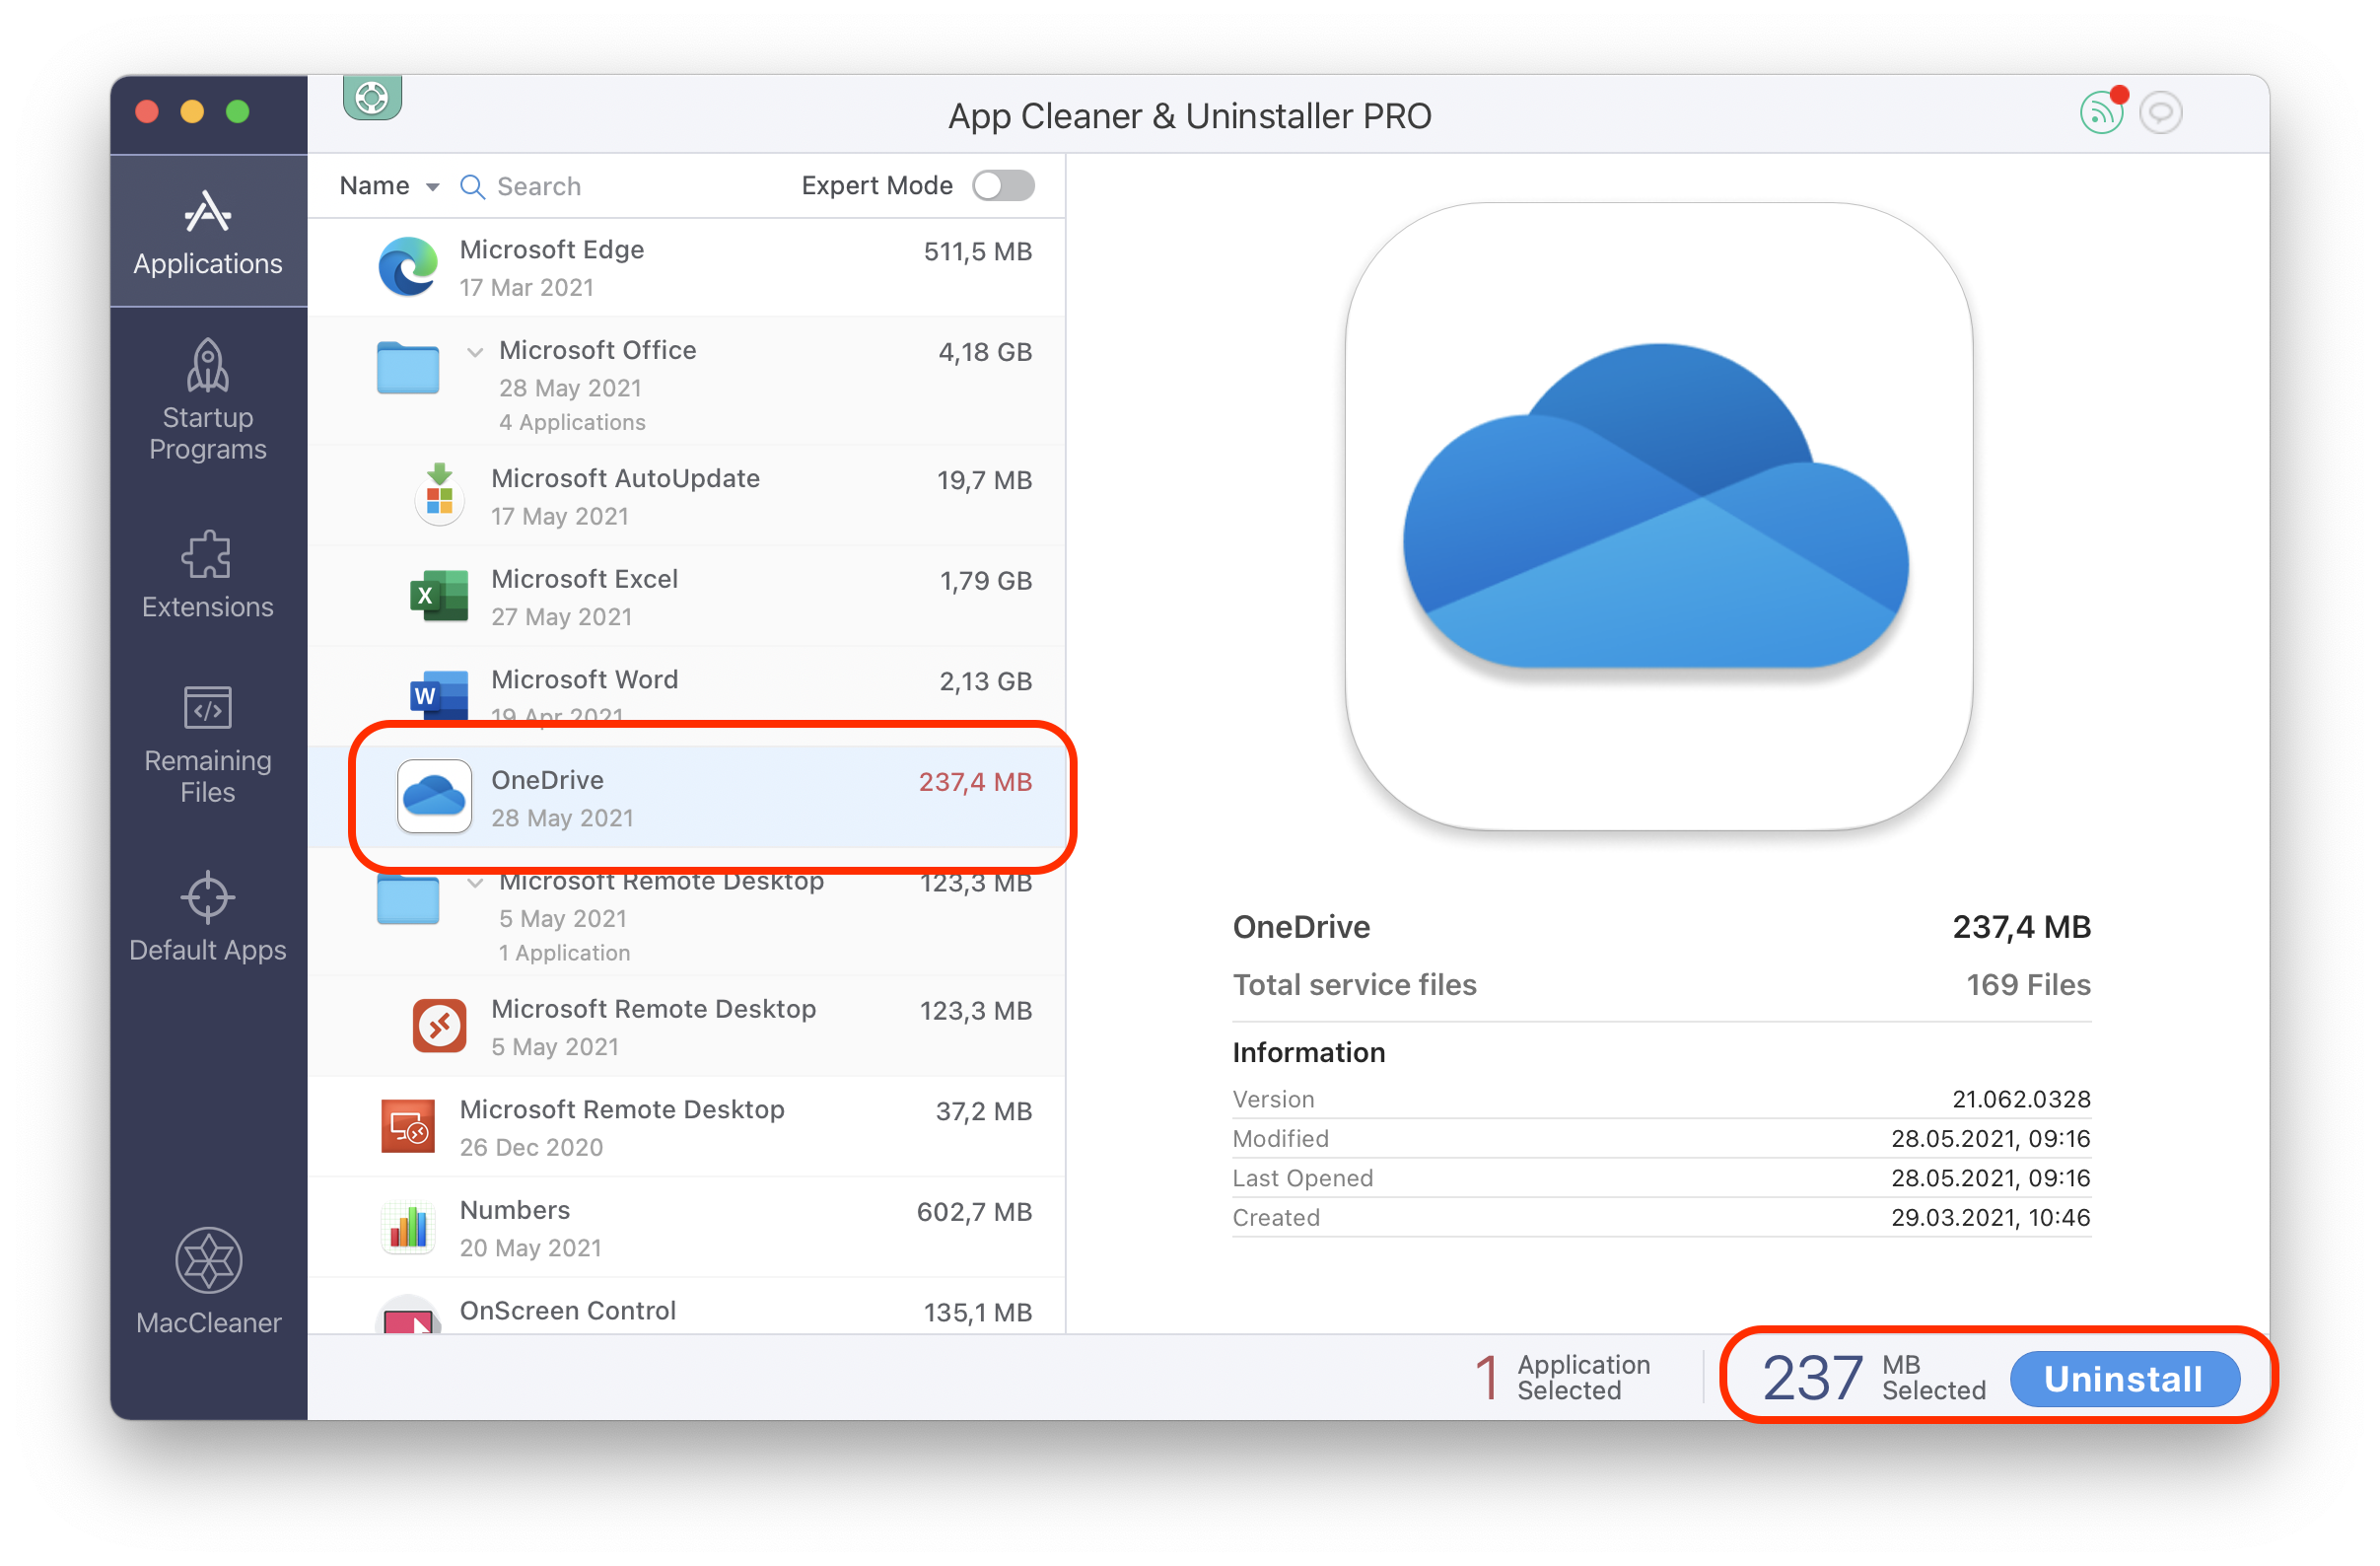 uninstalling OneDrive with App Cleaner